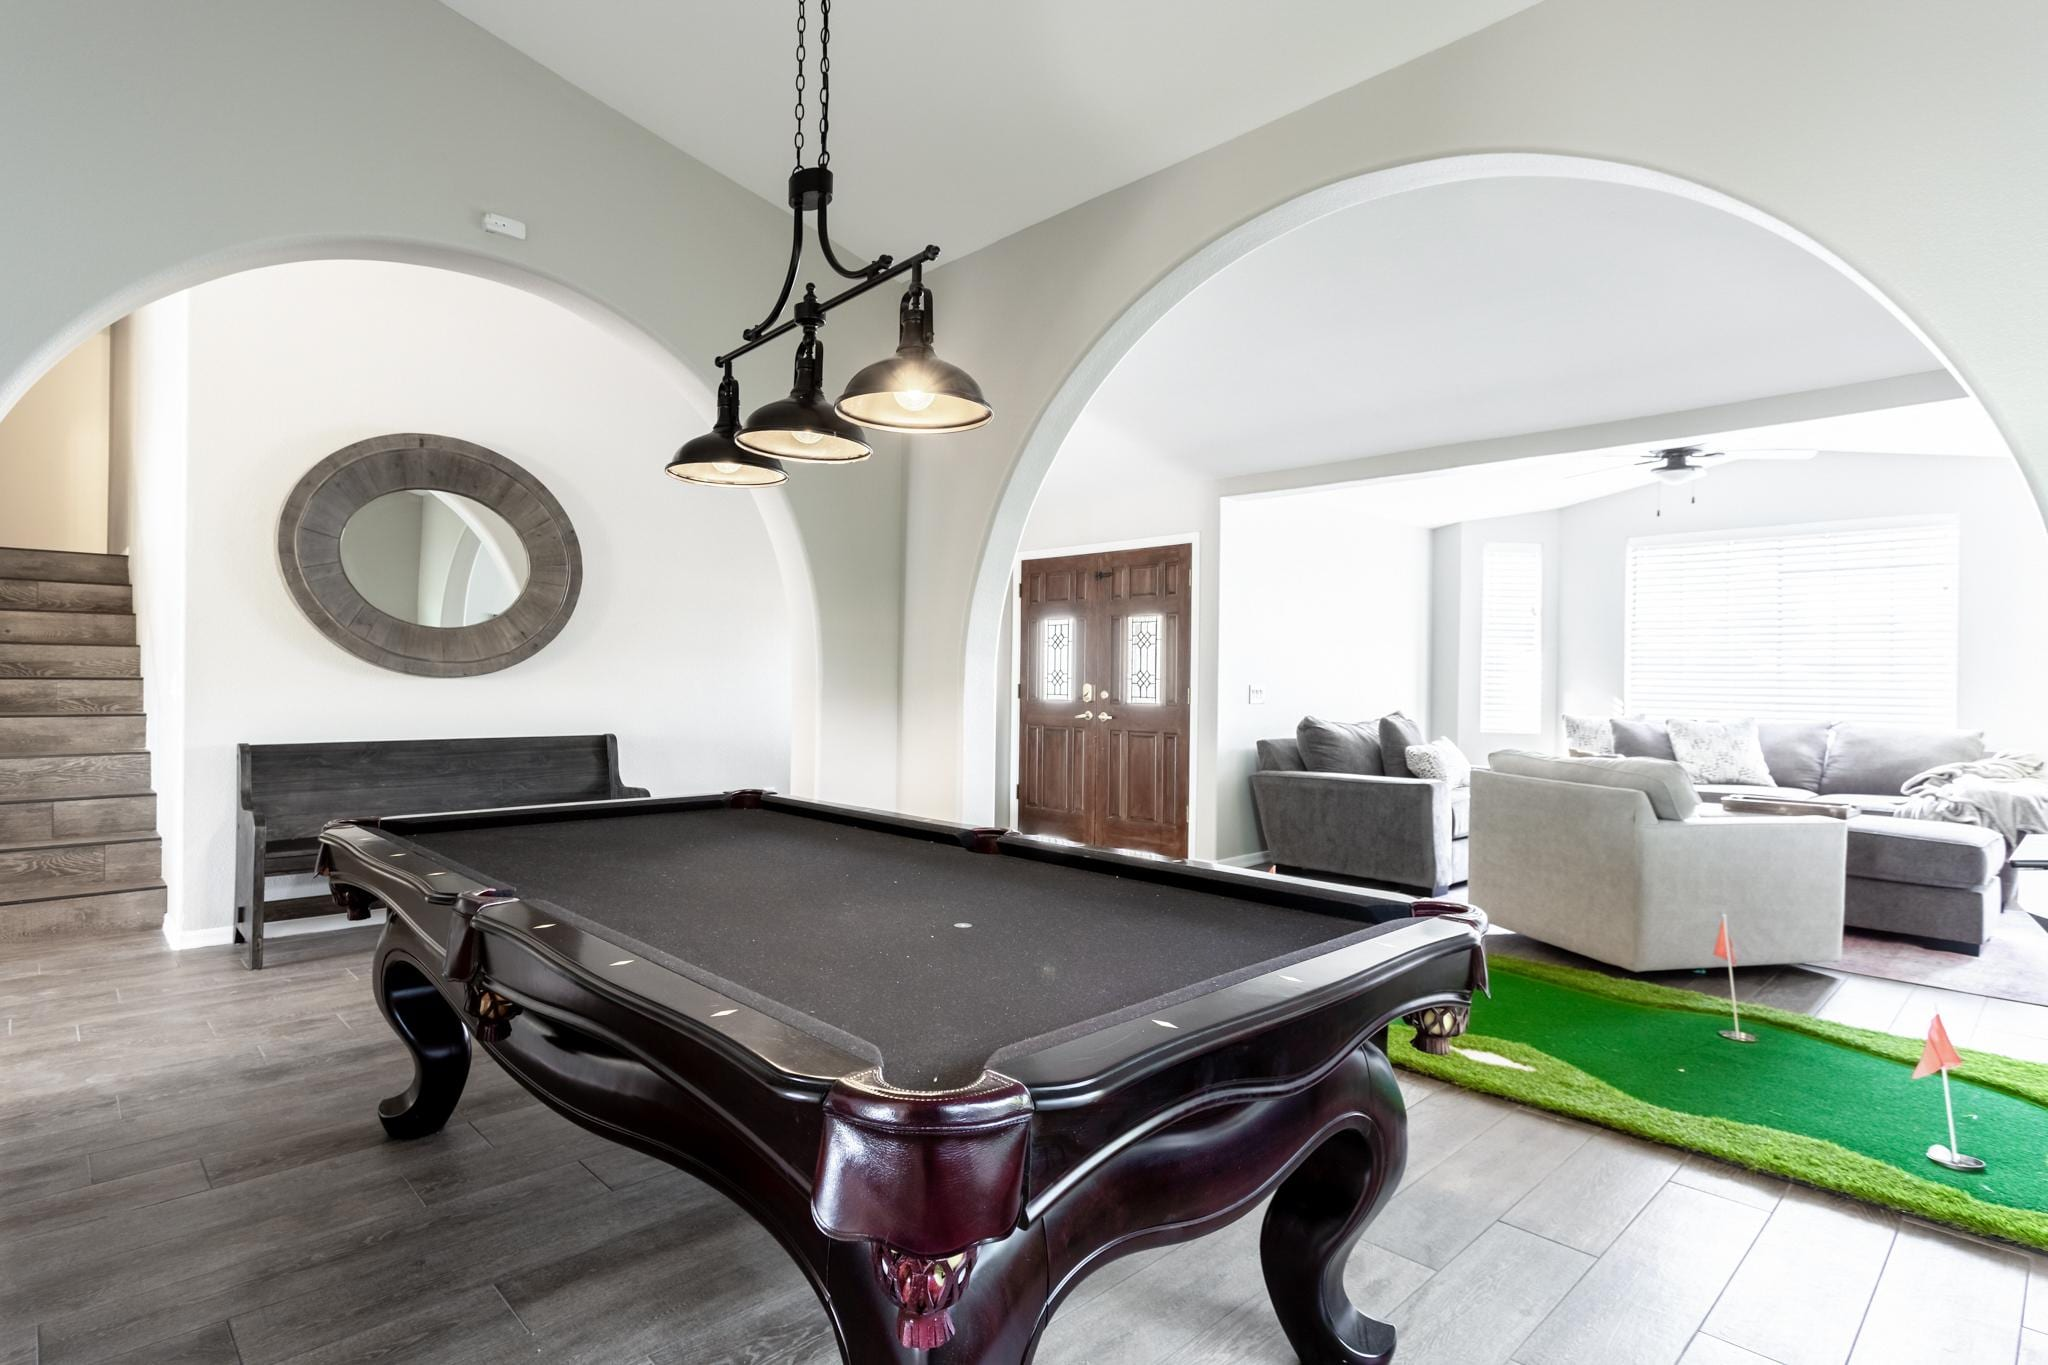 Property Image 2 - Entertaining Retreat Home with Pool and Games